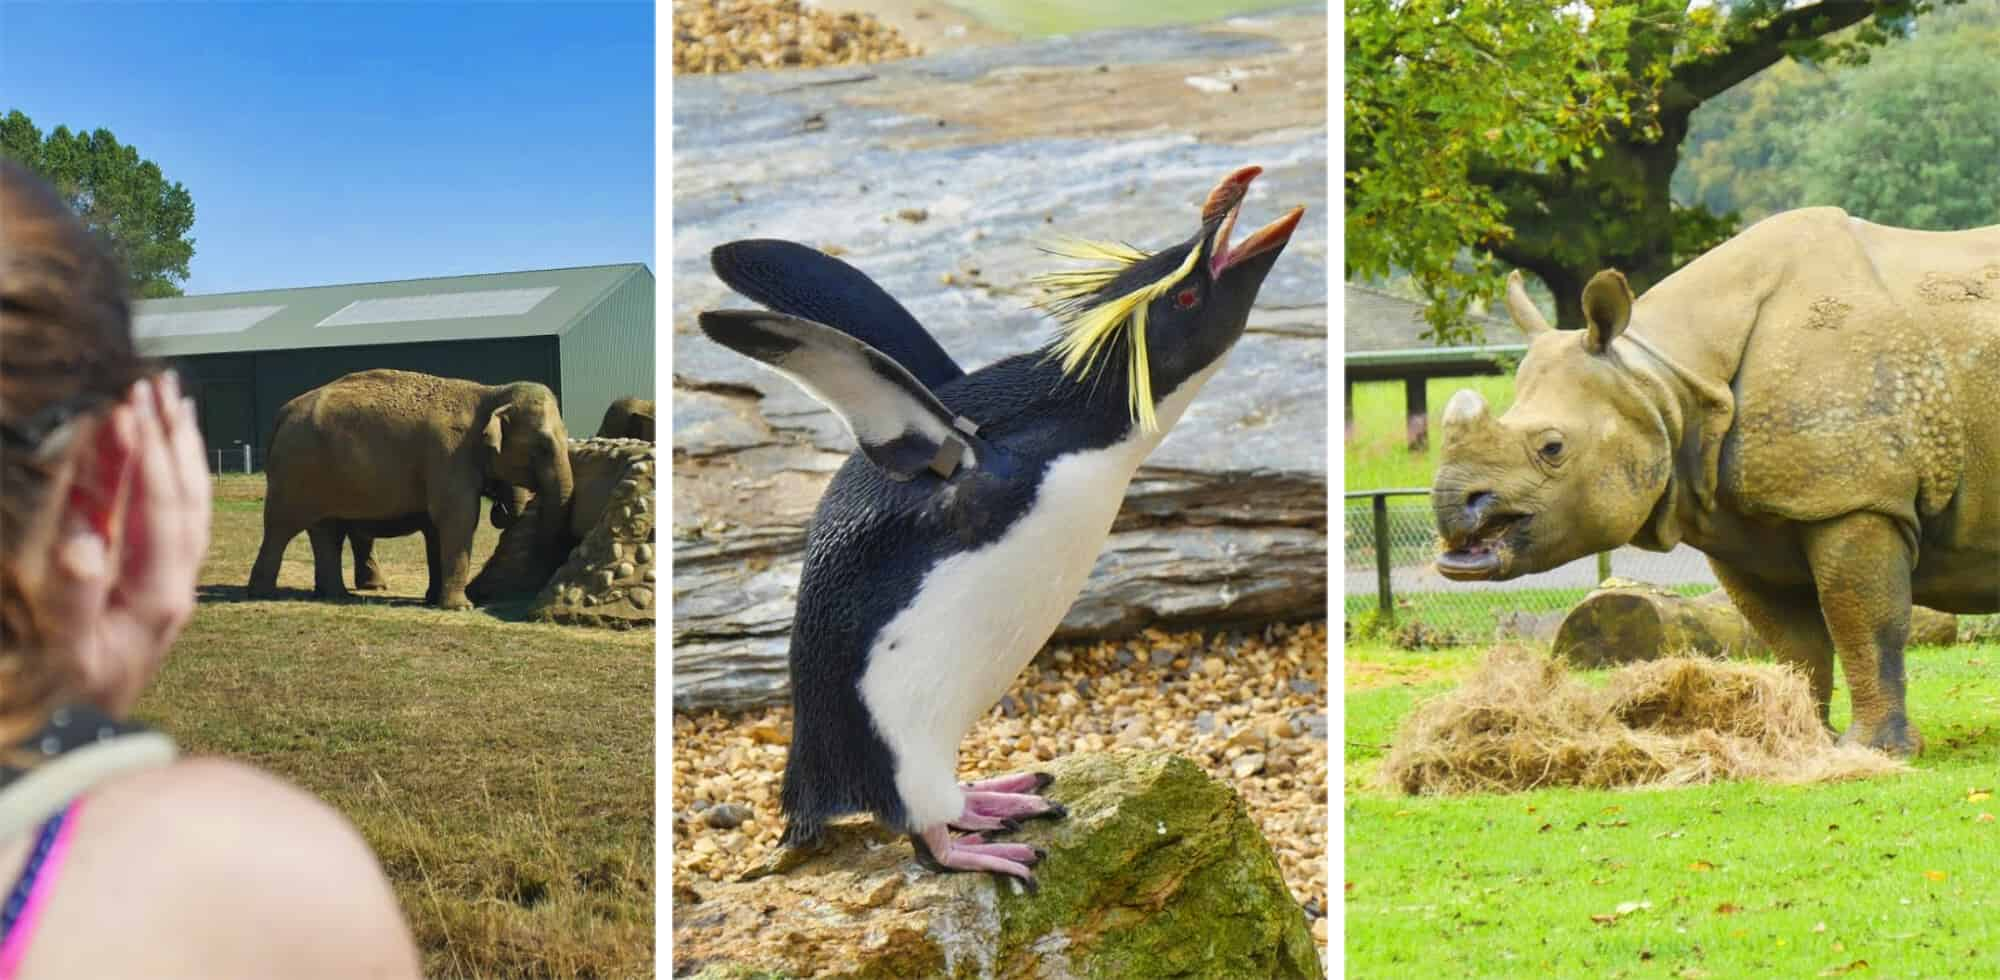 ZSL Whipsnade Zoo Review